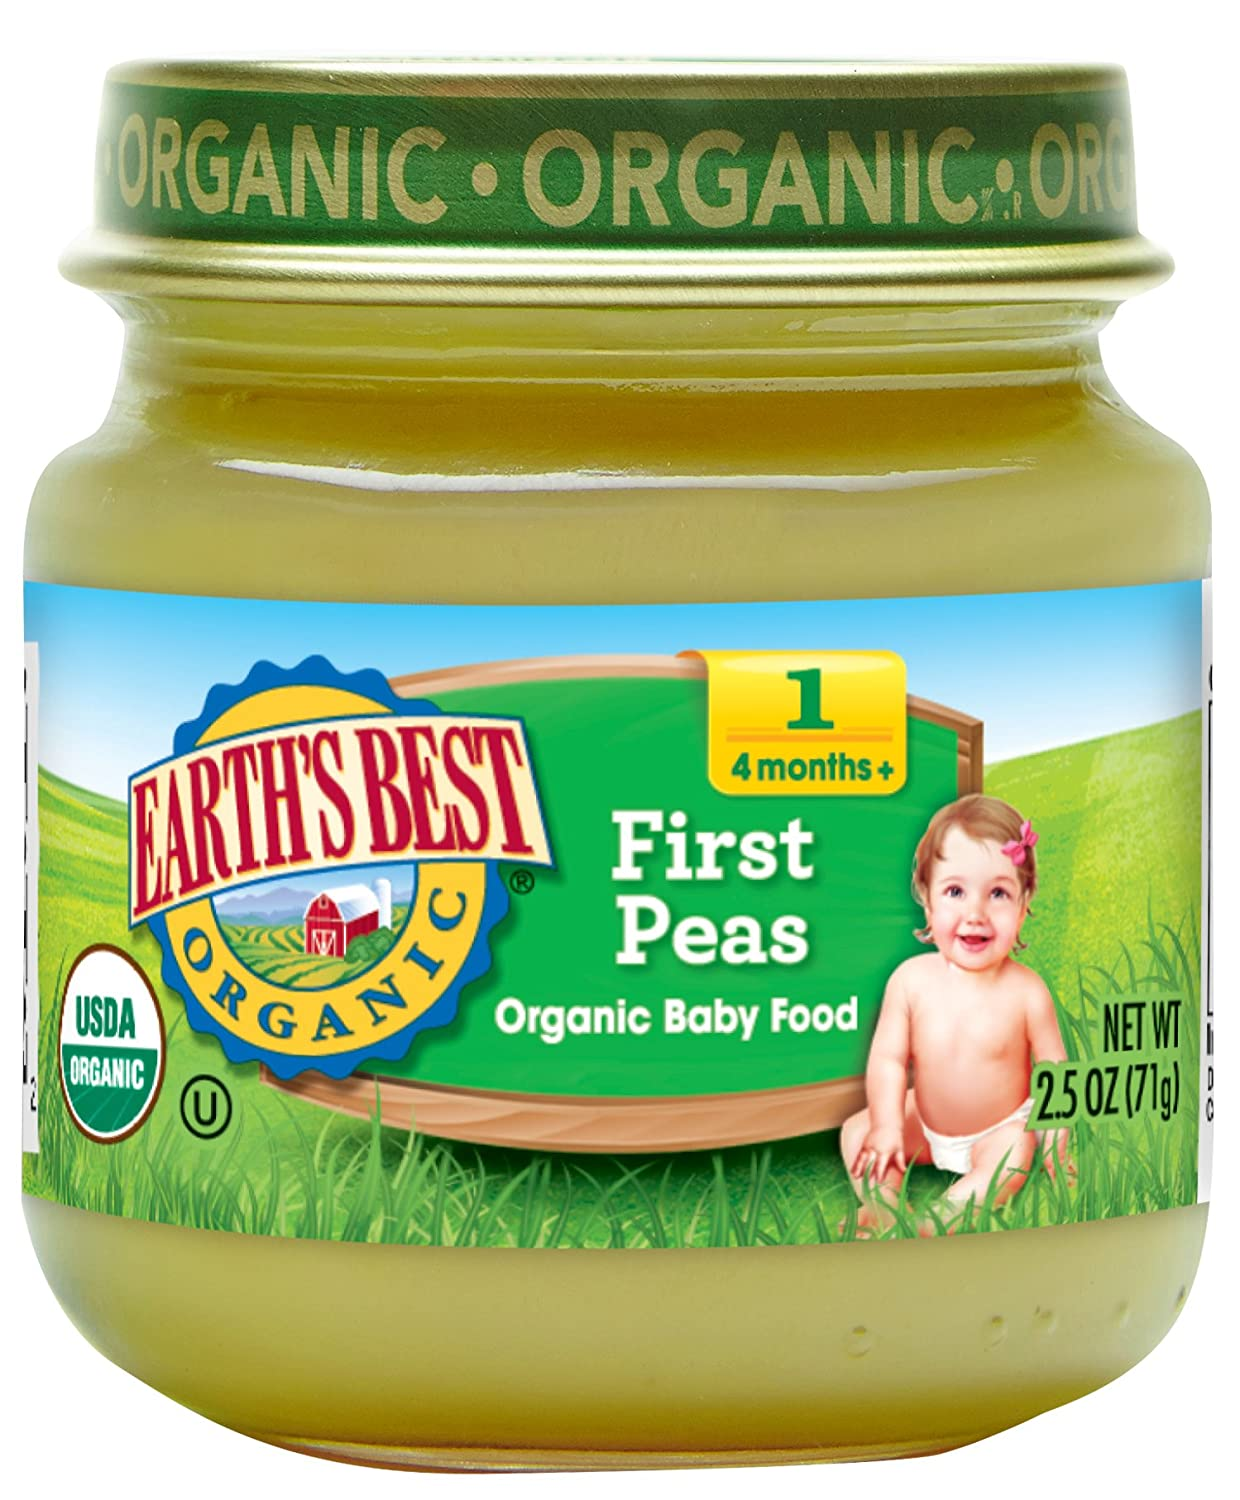 Earth's Best Organic Stage 1 Baby Food, My First Veggies Variety Pack (Carrots, Peas, and Sweet Potatoes), 2.5 Ounce Jars, Pack of 12 Earth' s Best C20091